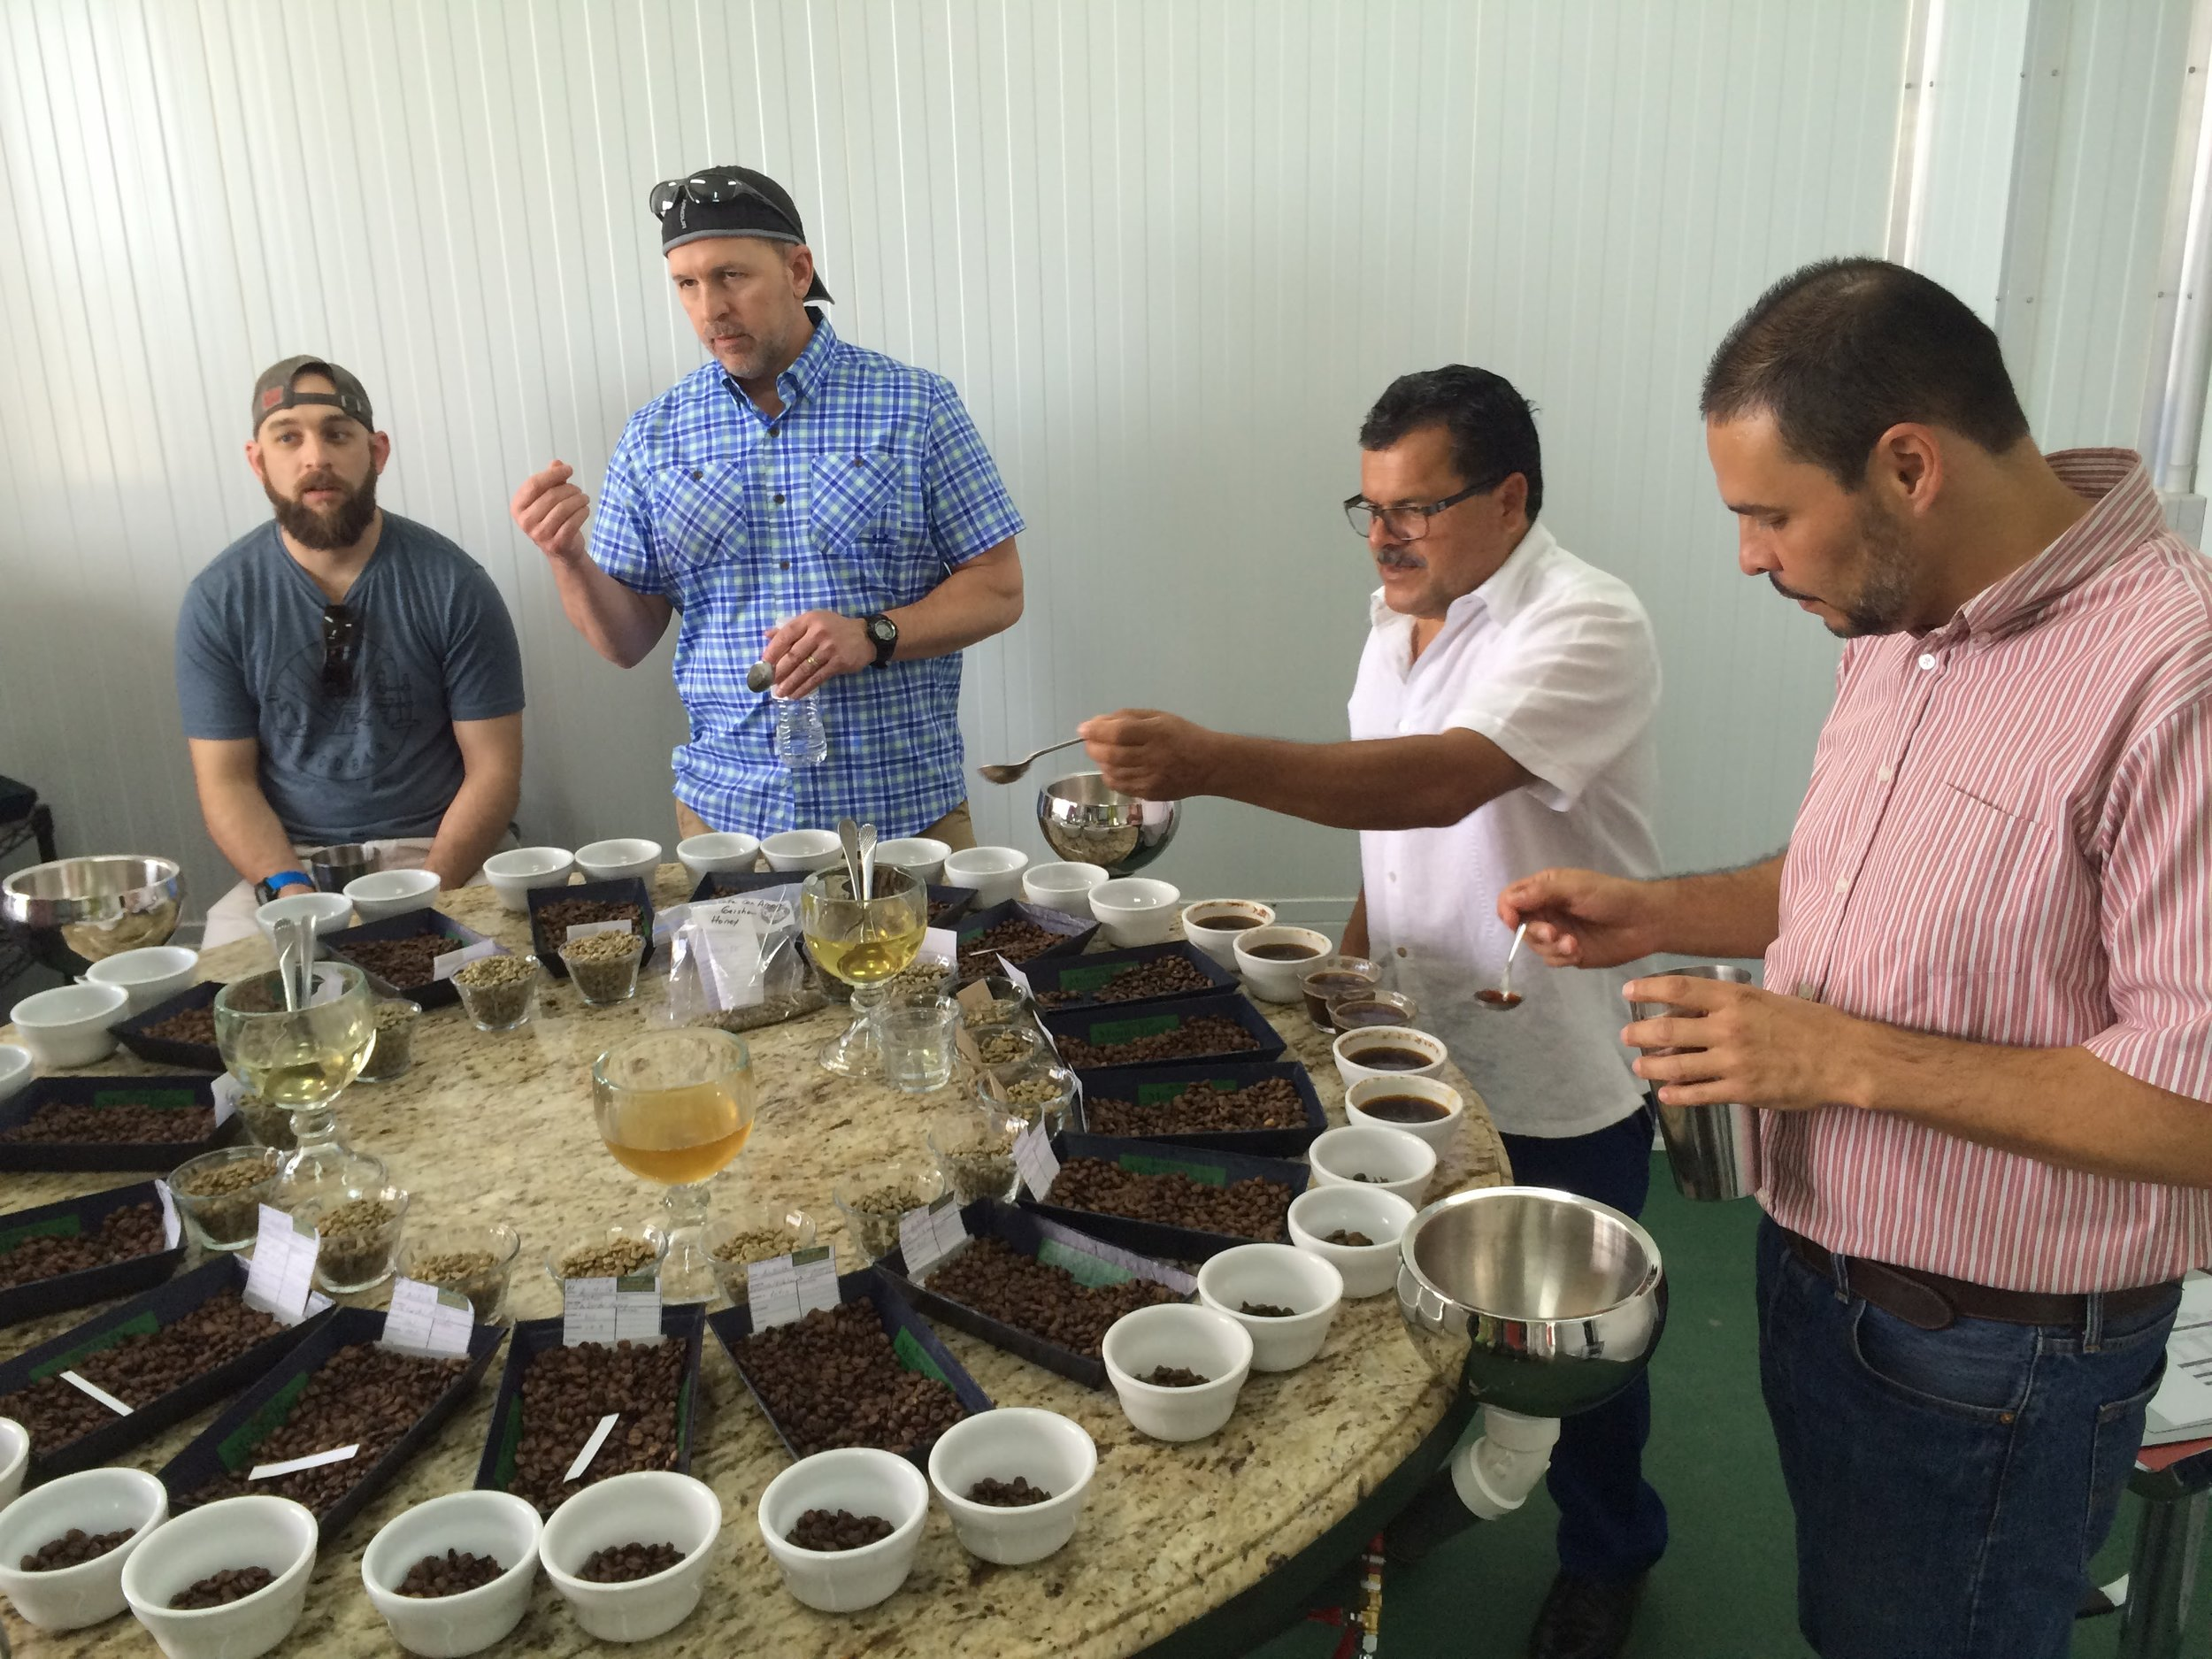 cupping at MR.JPG